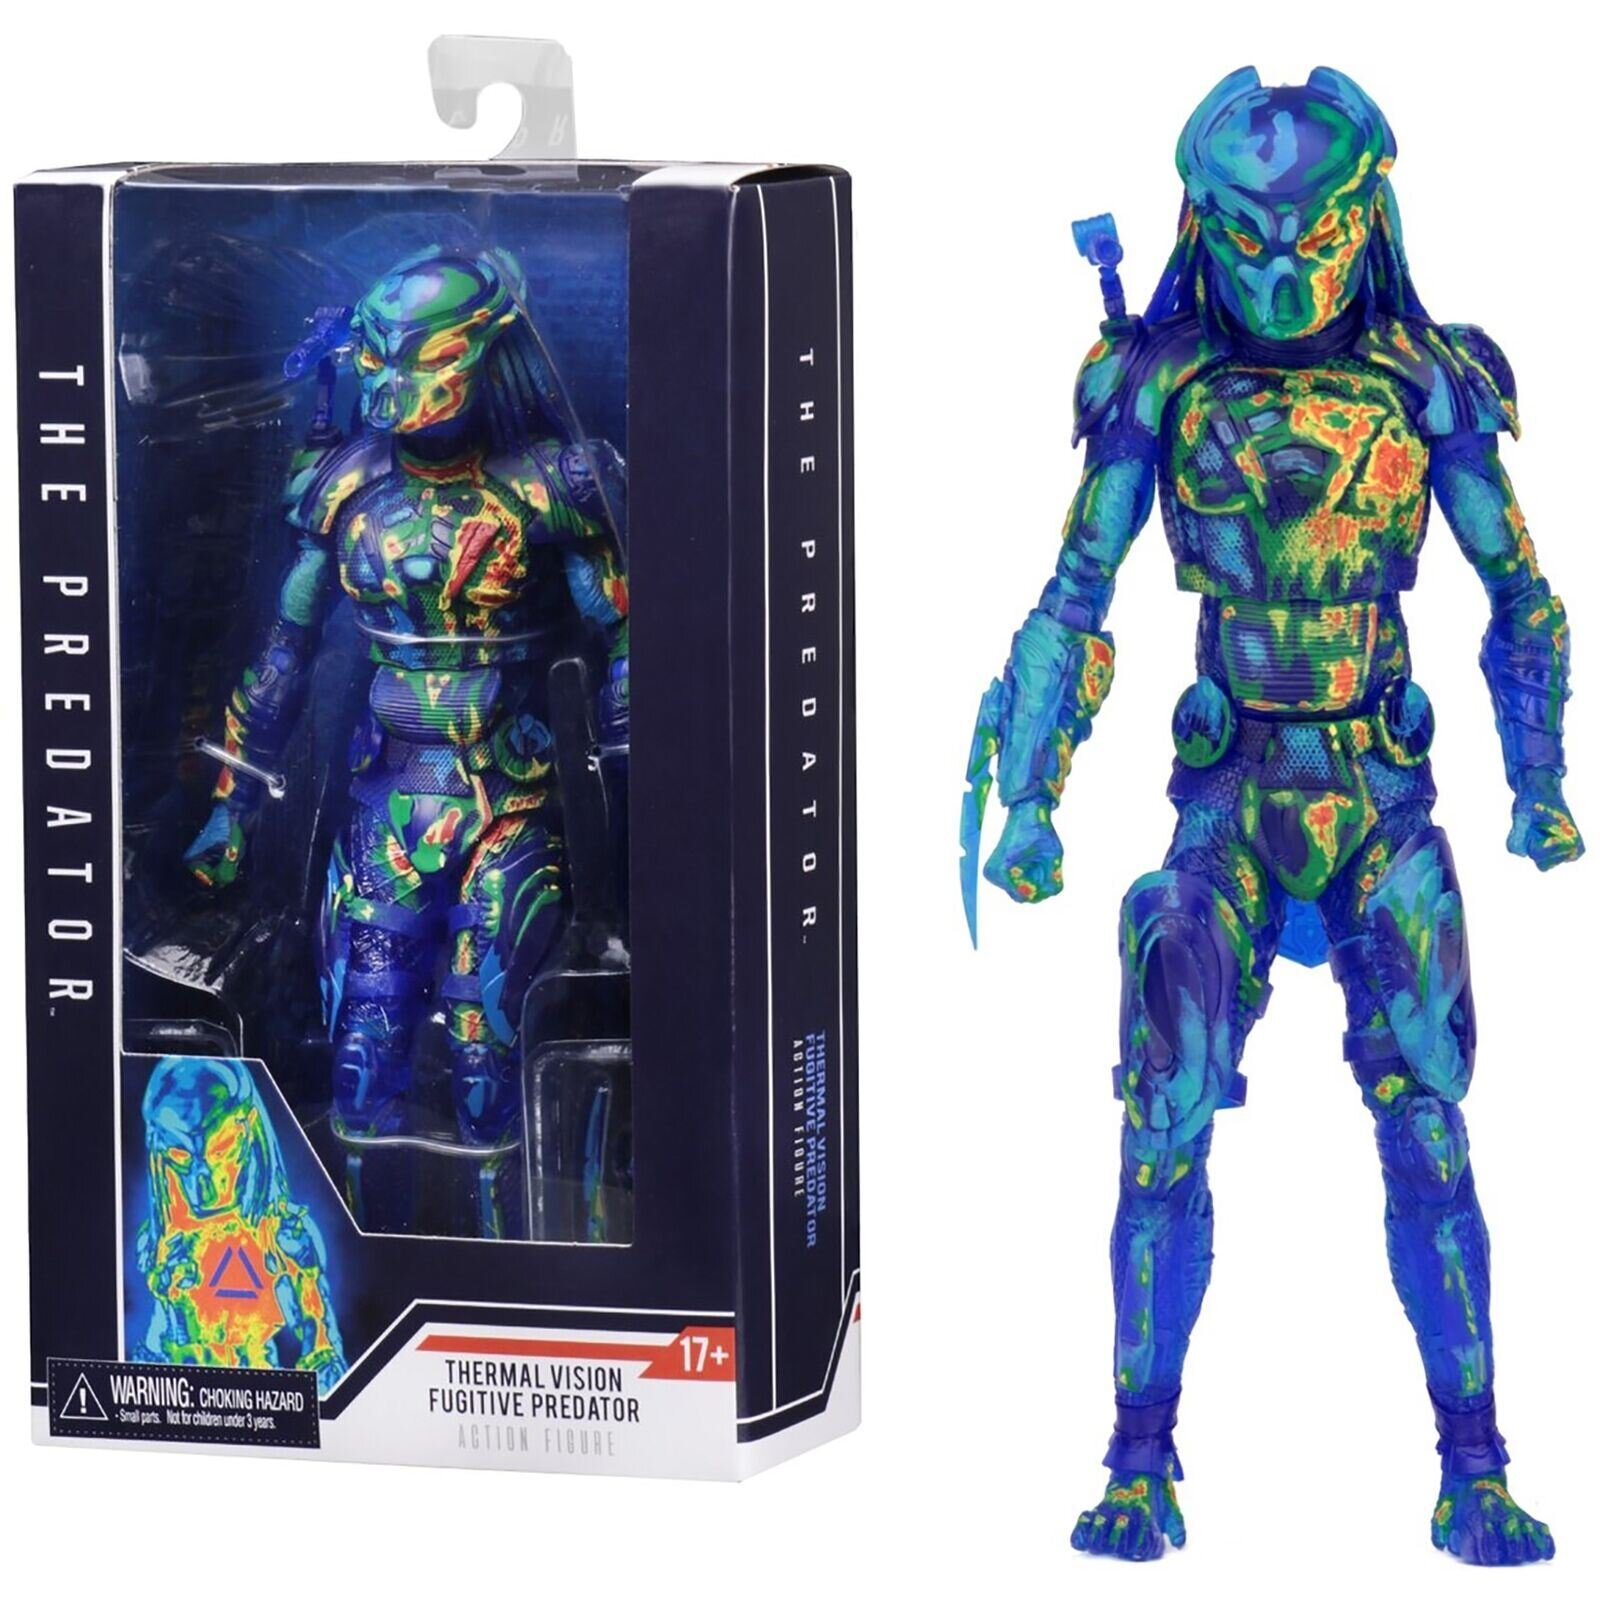 Фигурка NECA Хищник (Thermal Vision Fugitive Predator)